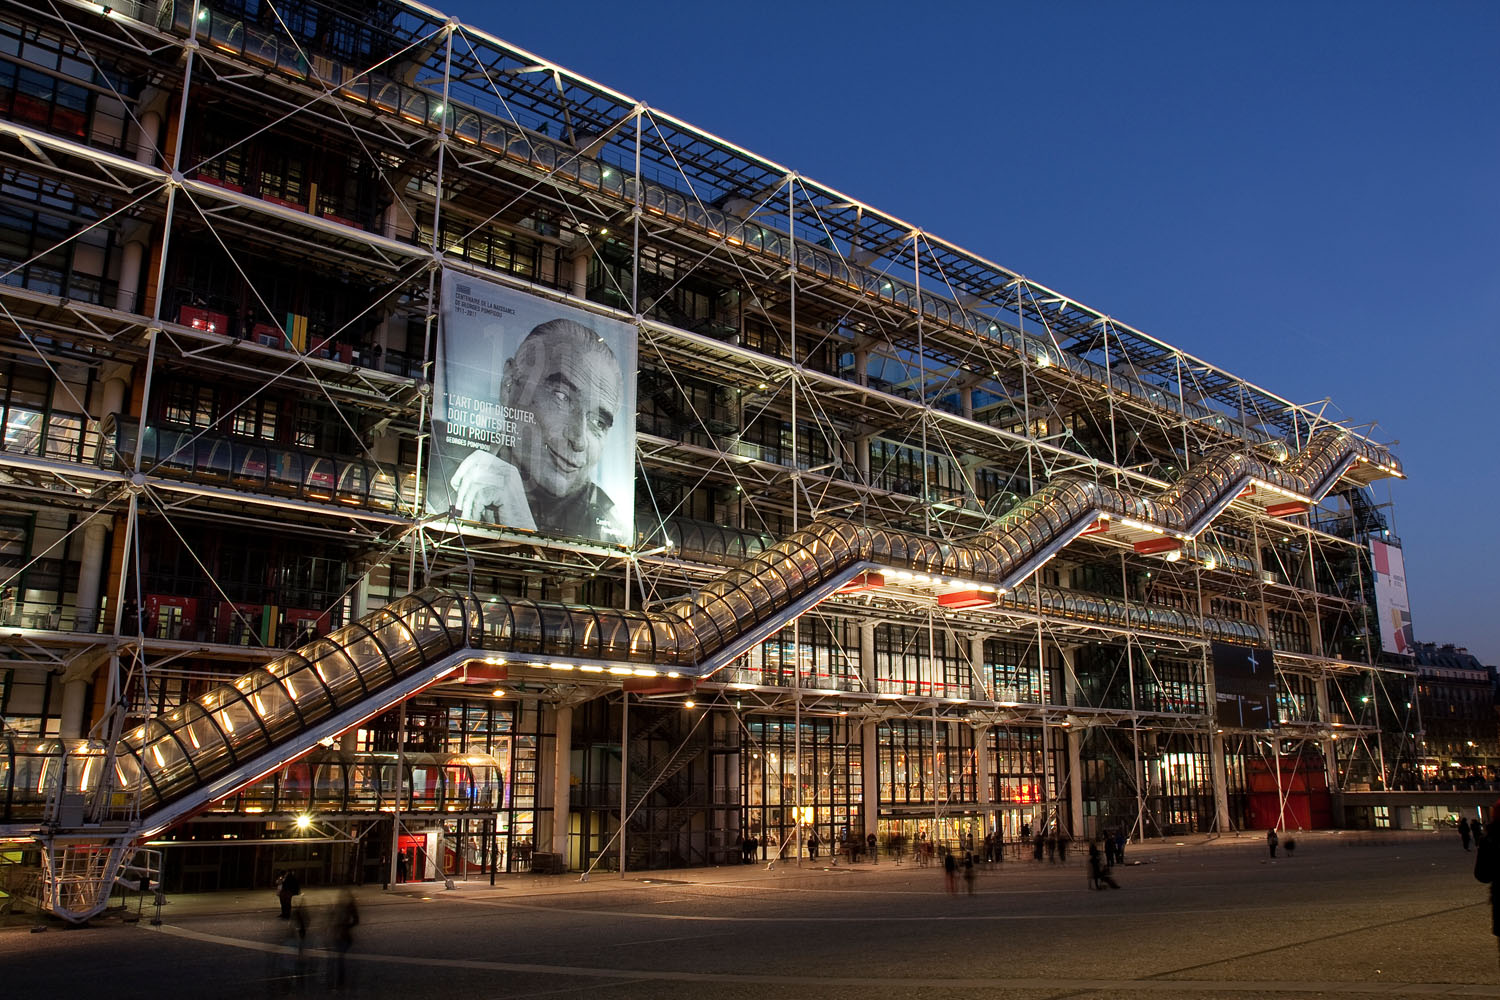 Pompidou Centre - Paris, France